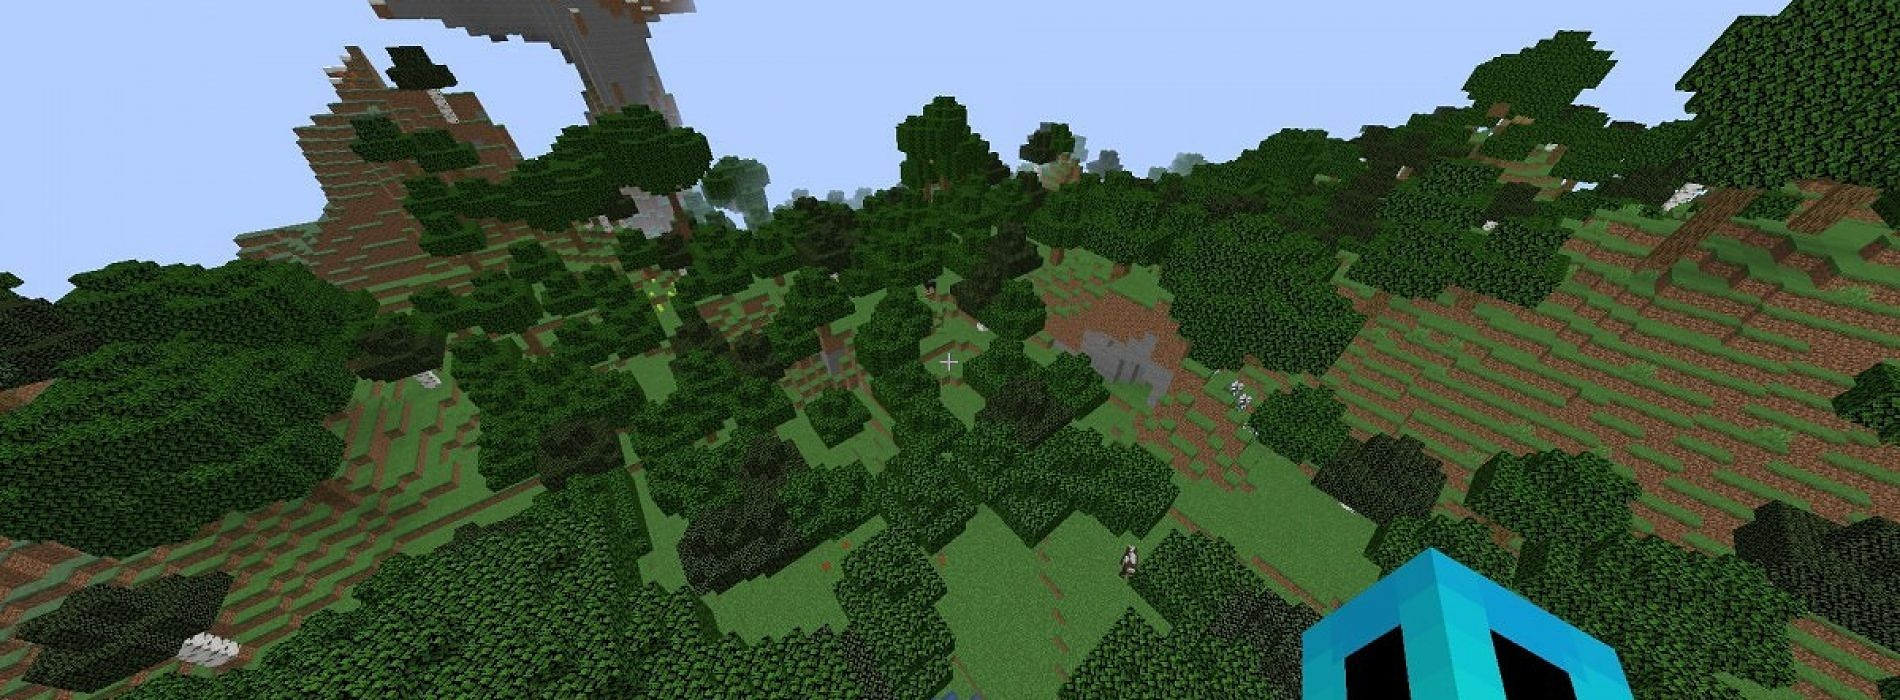 How To Run A Minecraft Server From Your Android Smartphone Or Tablet